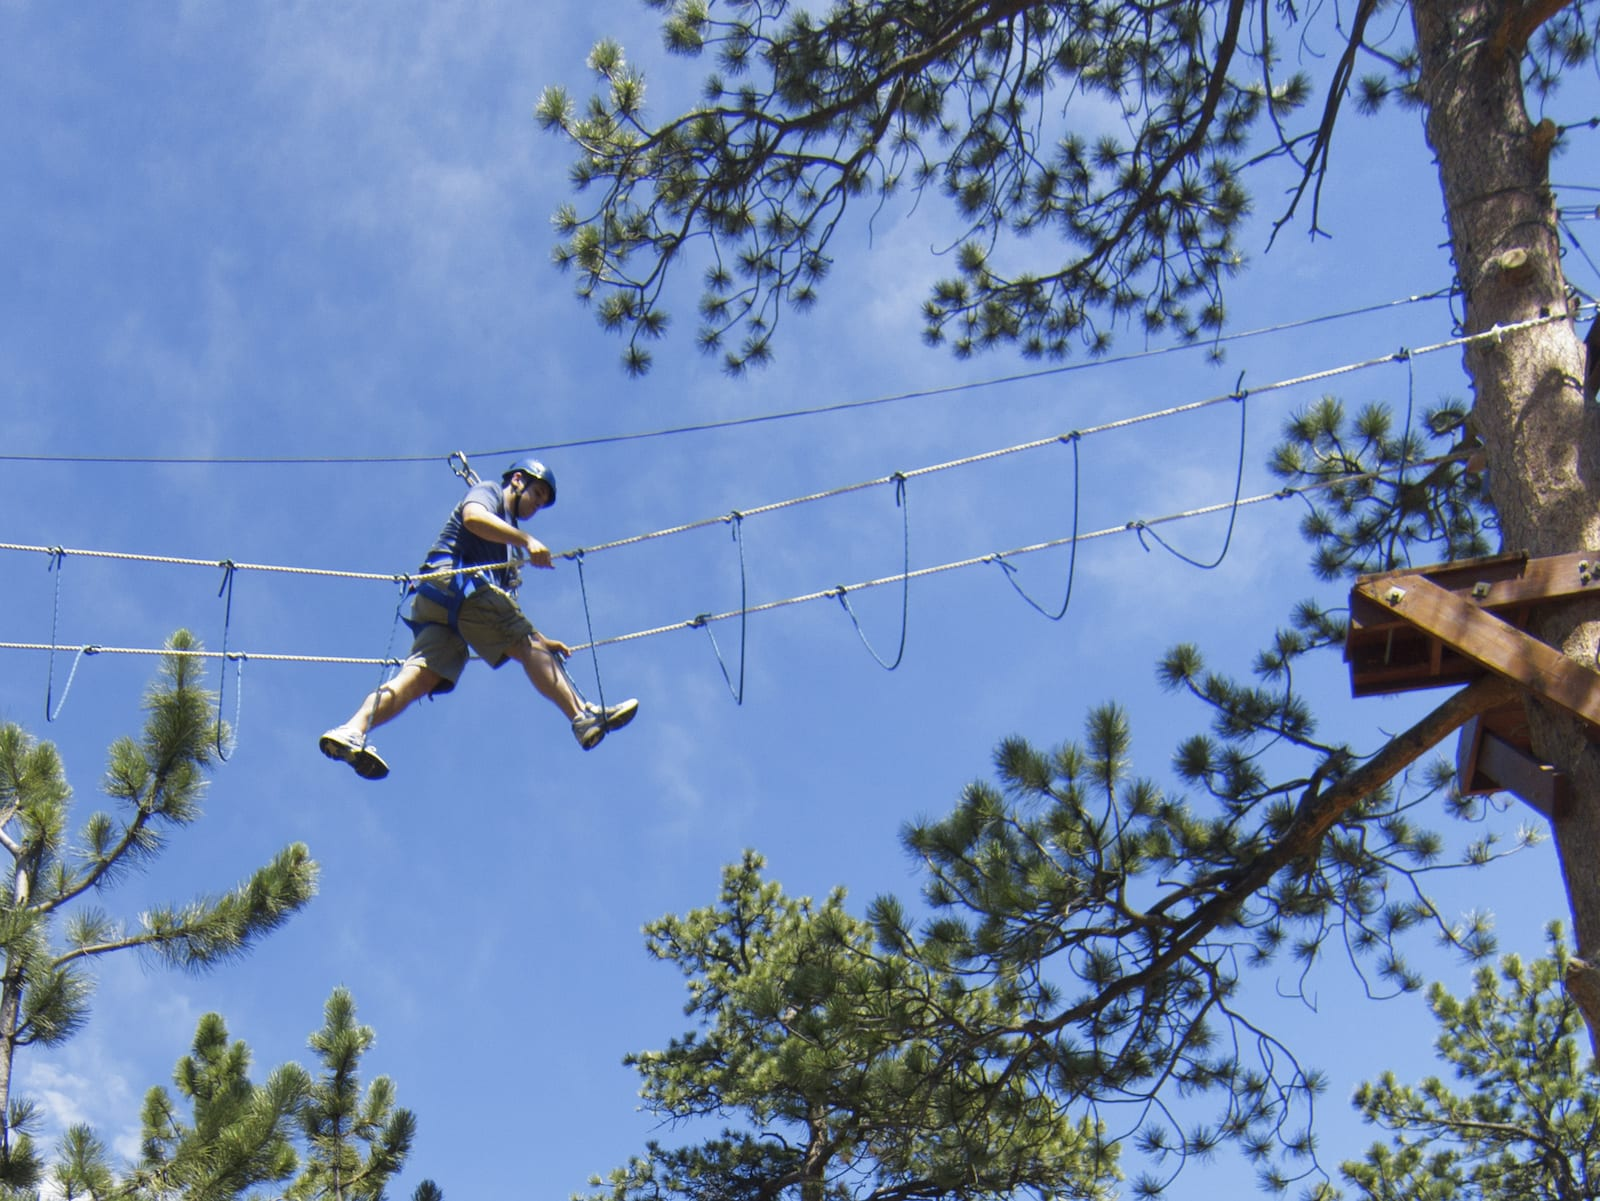 Challenge course at YMCA of the Rockies, CO